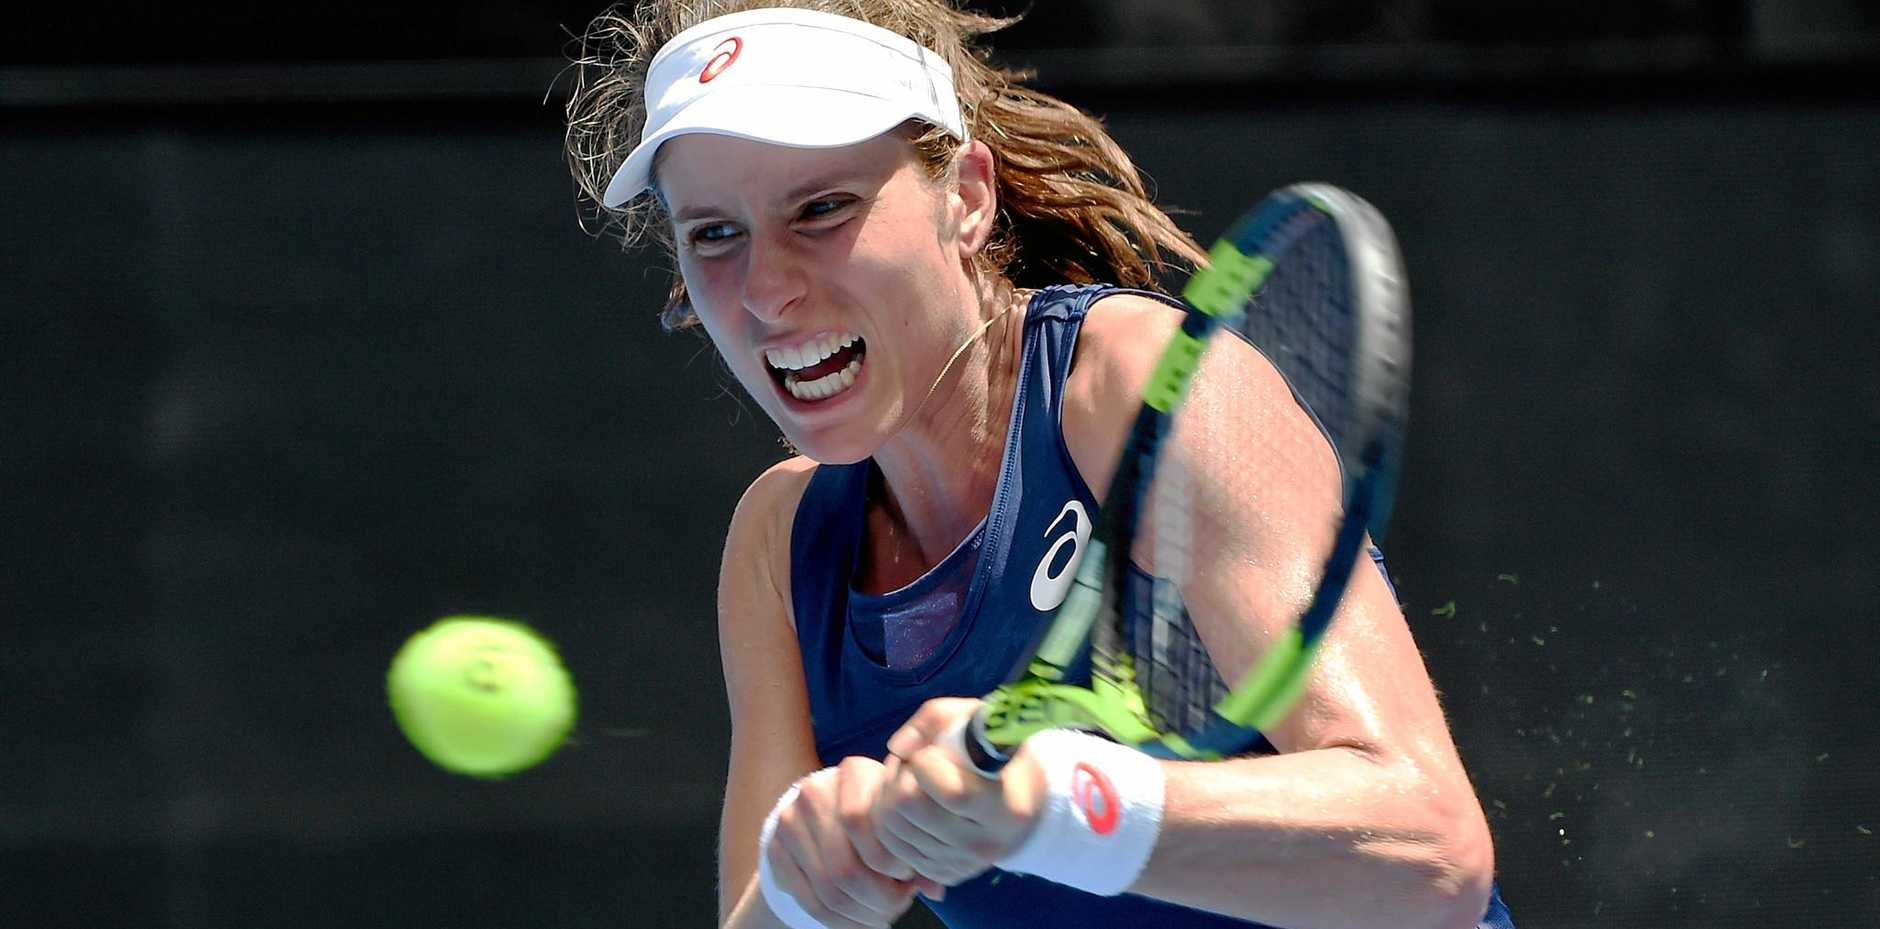 Johanna Konta of Great Britain in action against Kirsten Flipkens of Belgium.